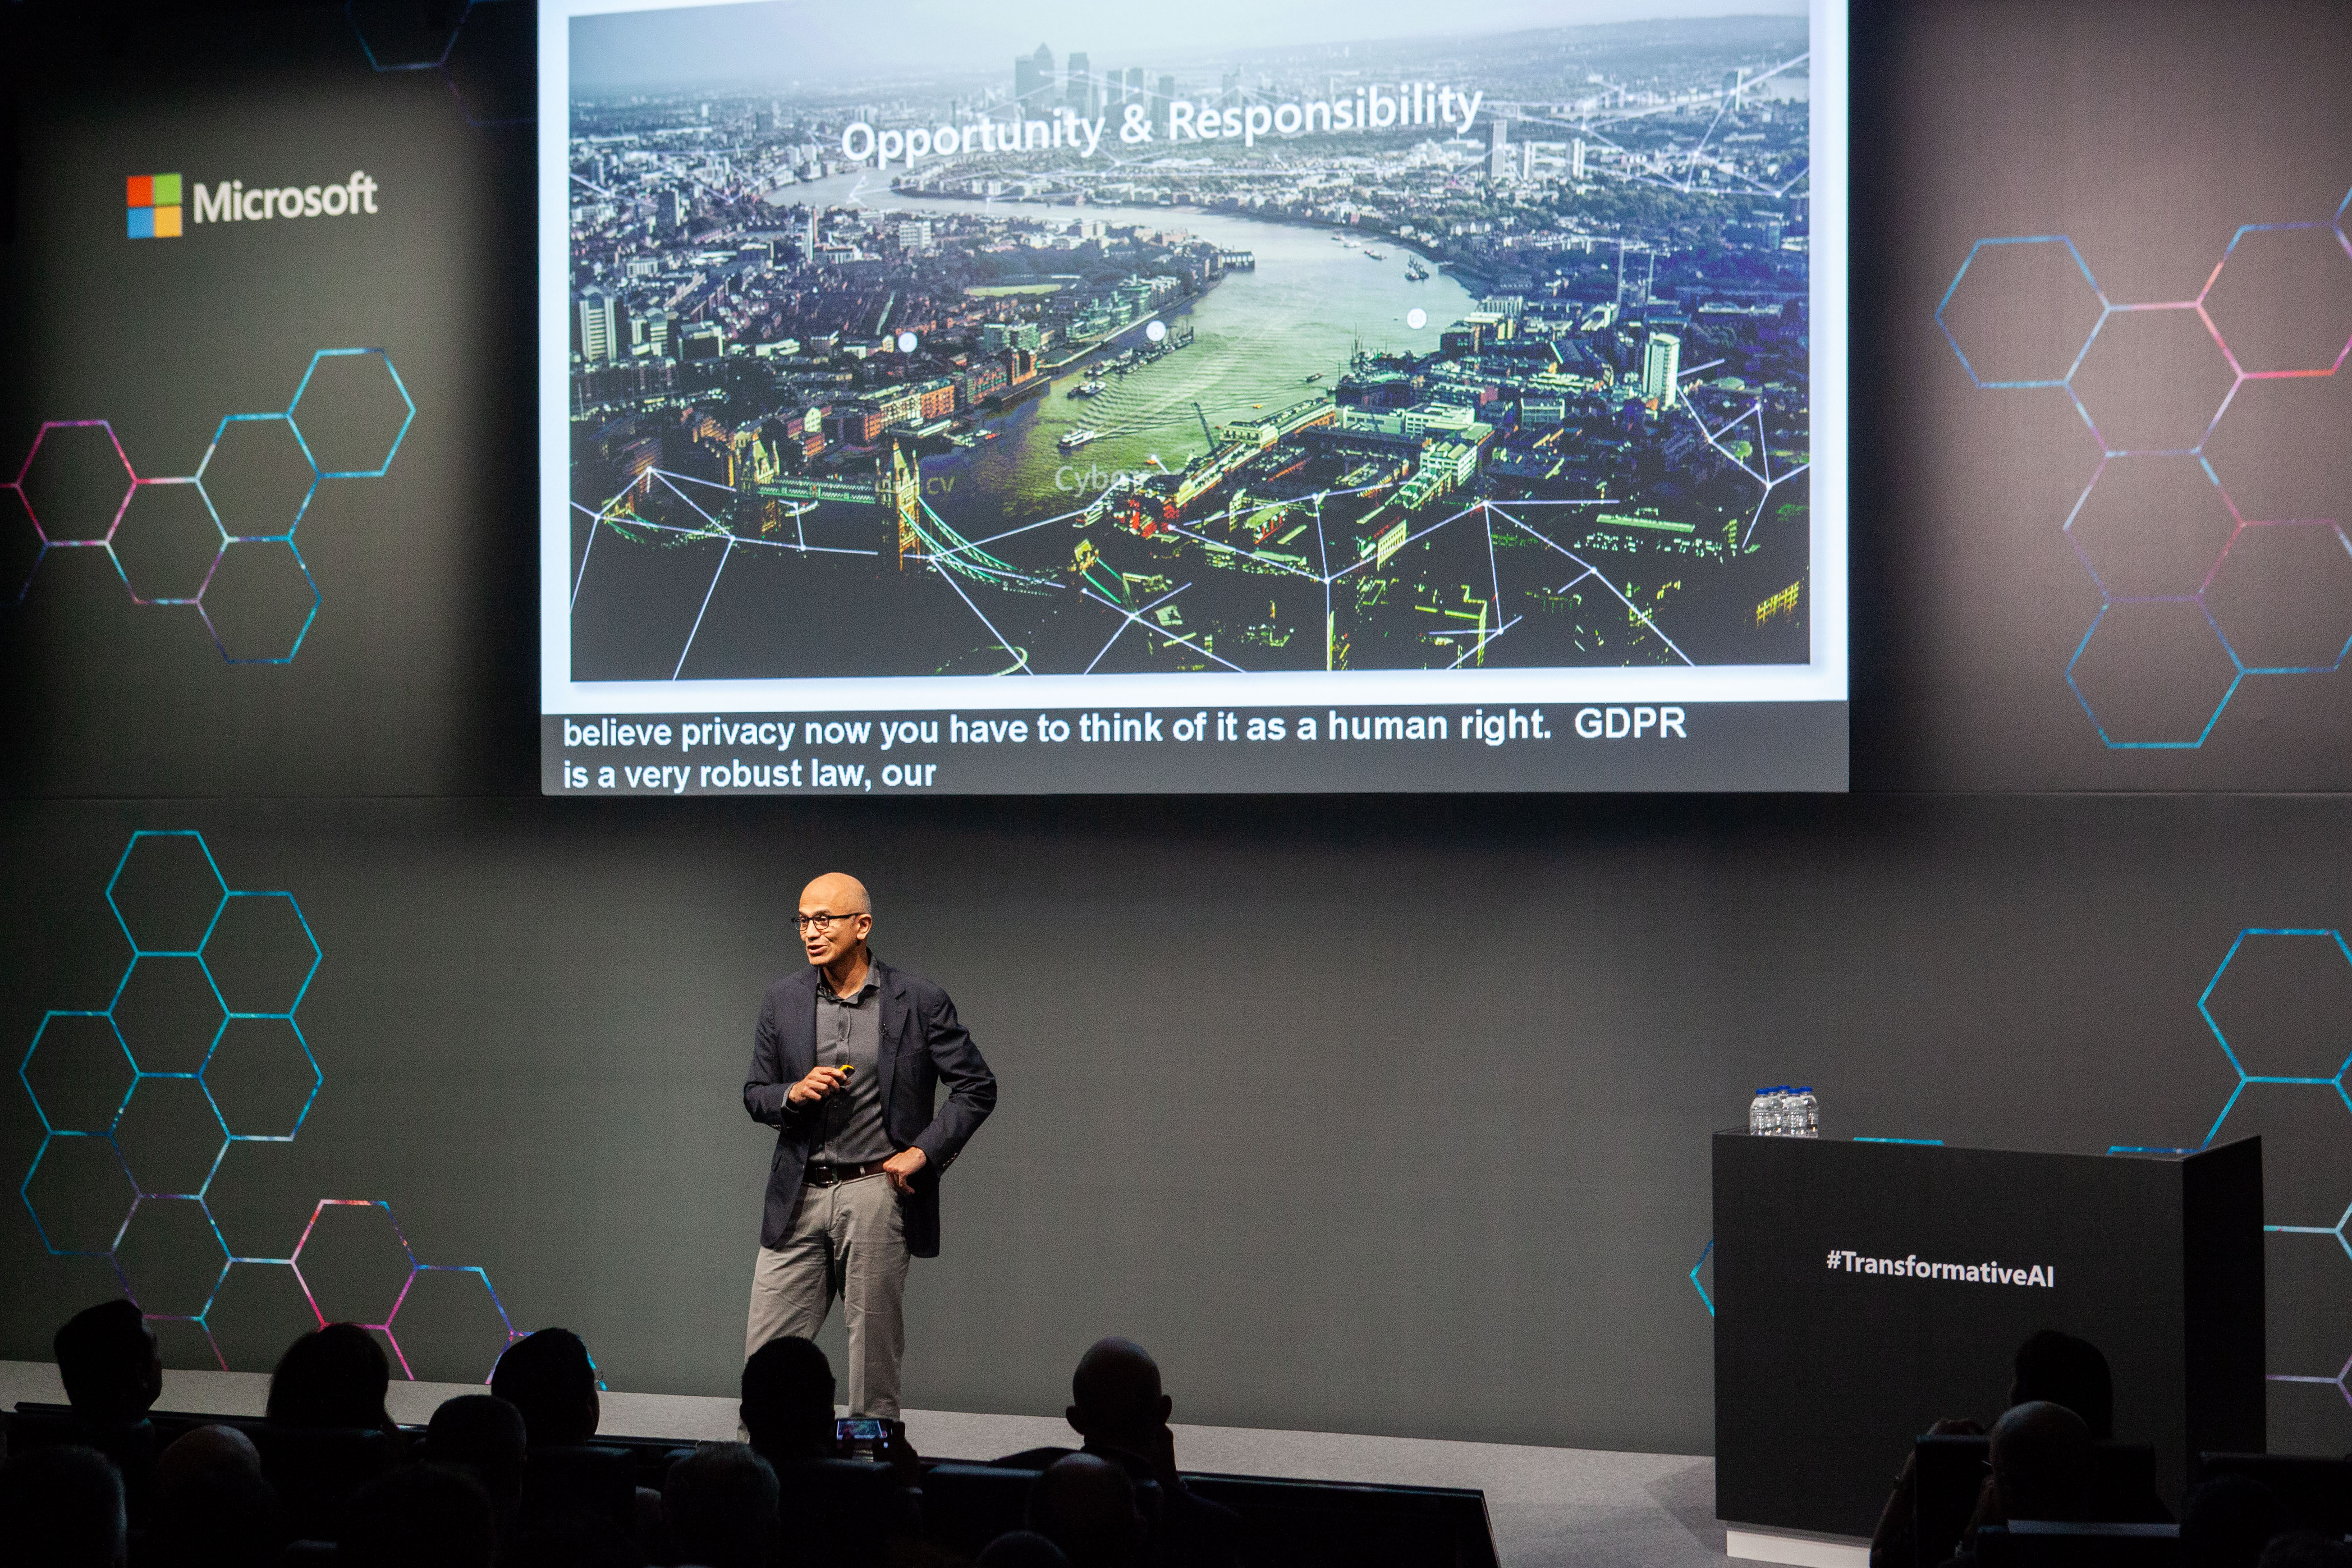 Satya Nadella, Microsoft CEO, speaking at Microsoft's Leading Transformation with AI in central London, 22nd May 2018